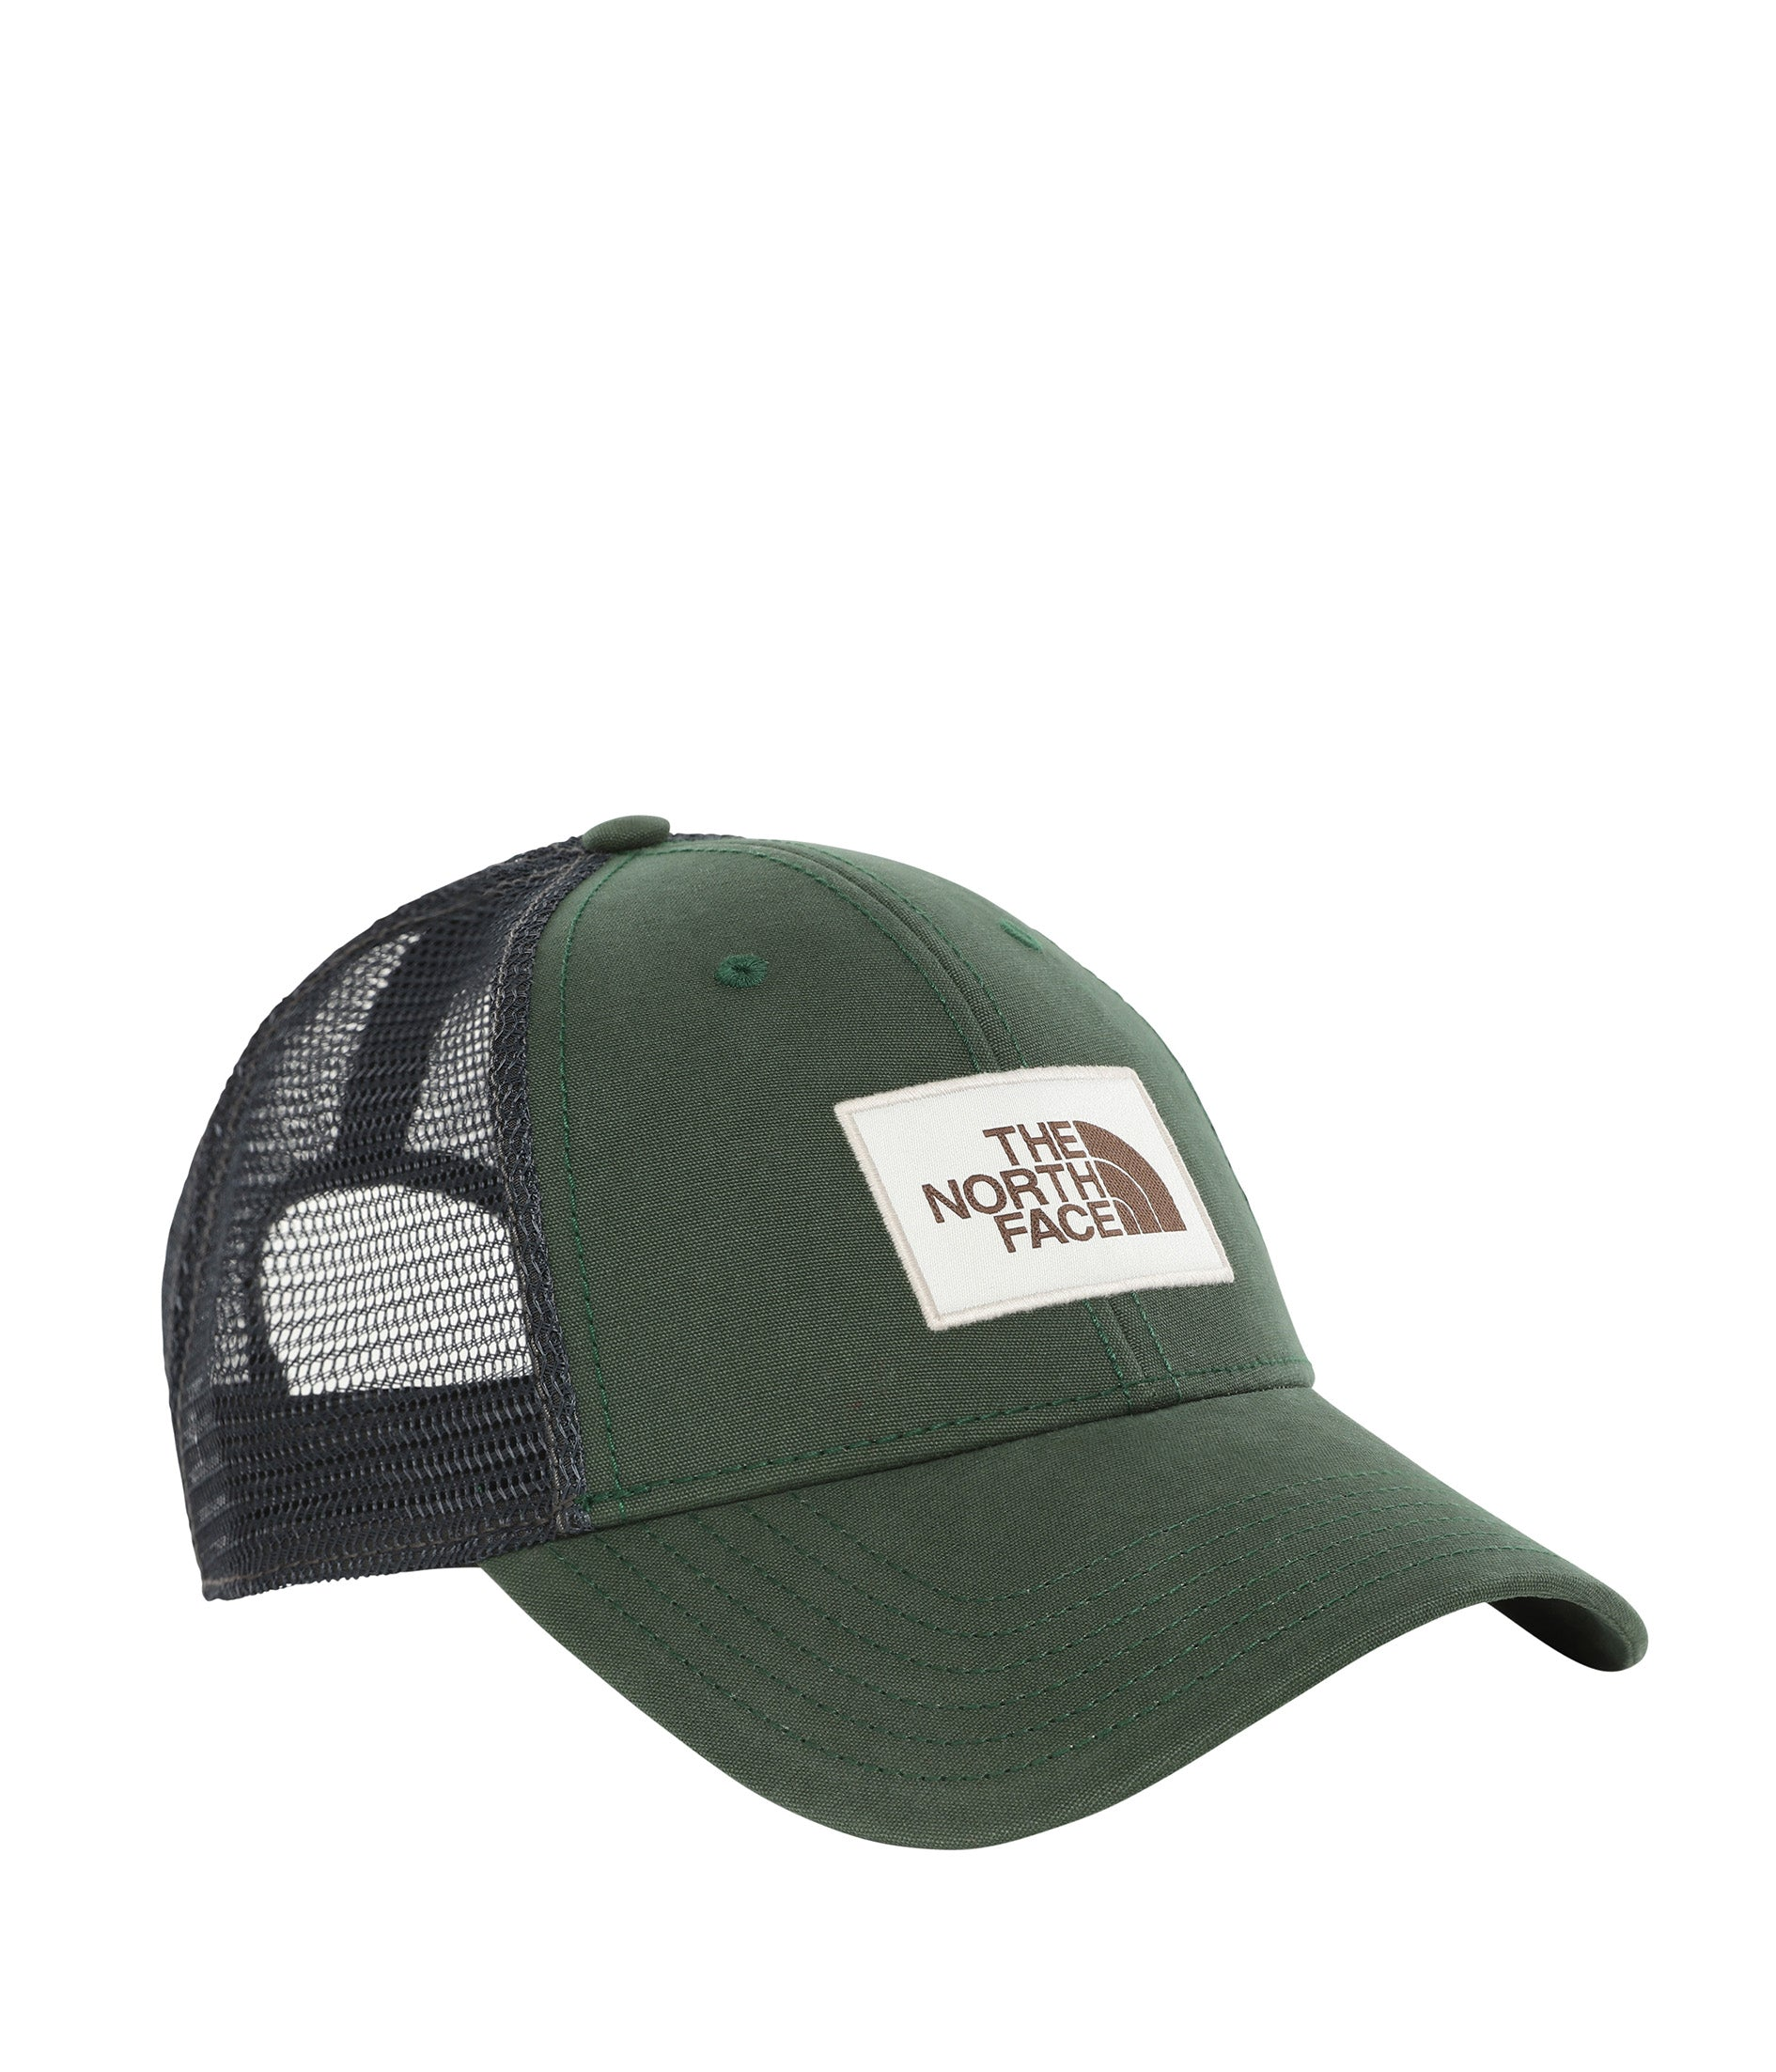 The North Face Mudder Trucker Hat thumbnail